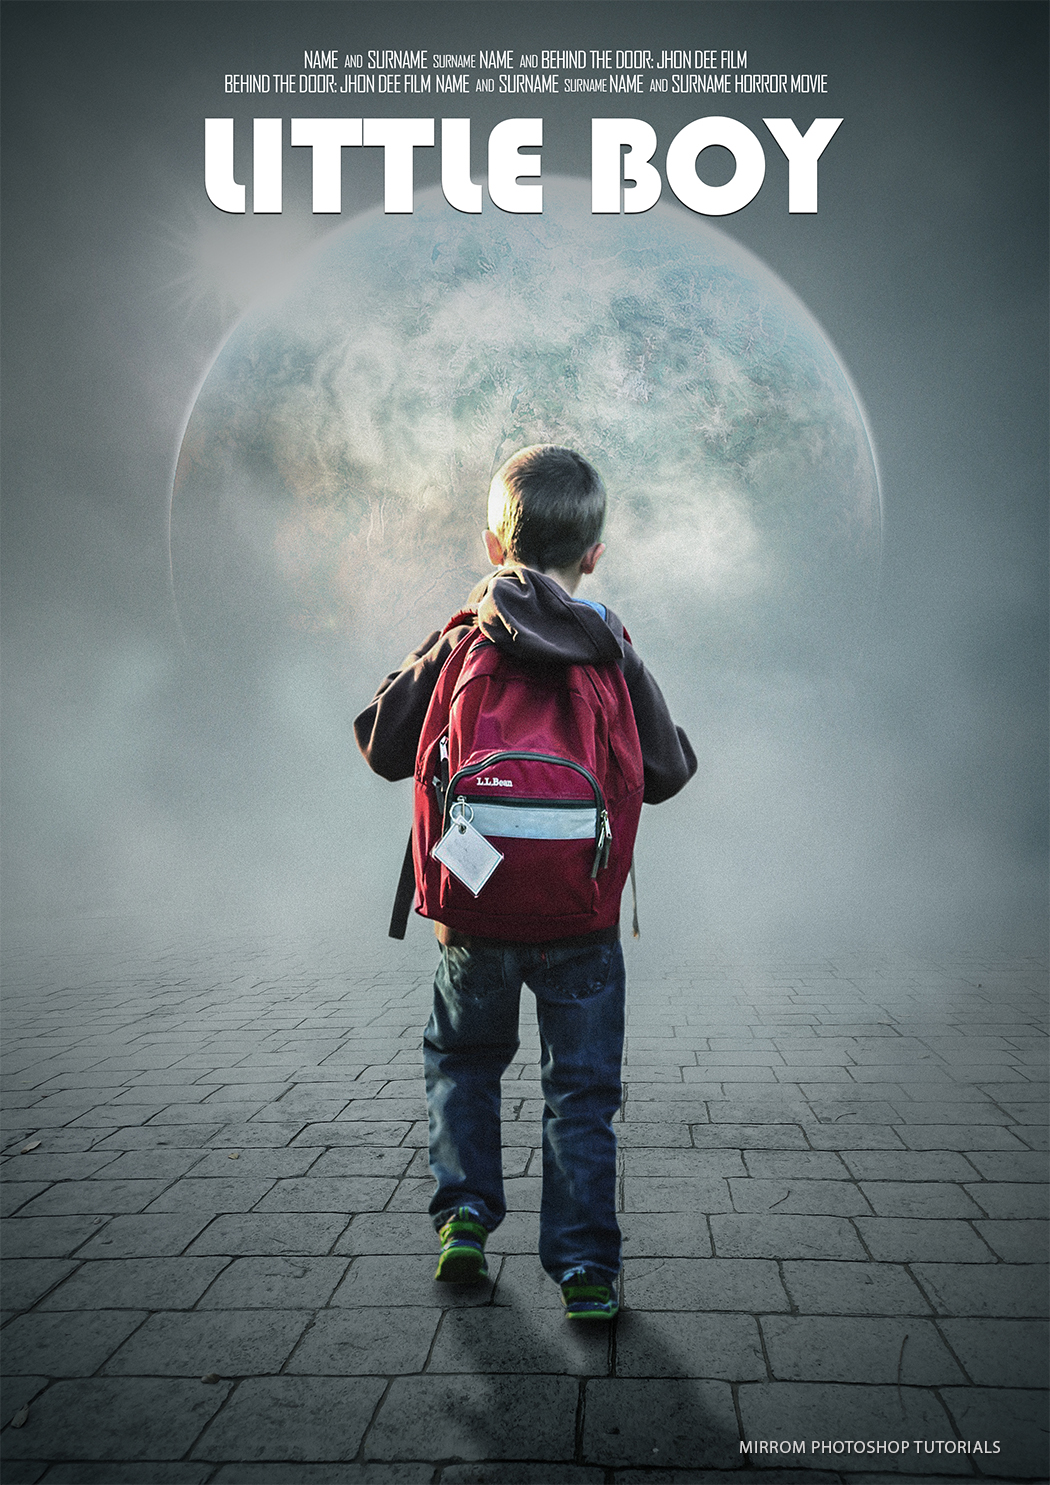 Creating an Little Boy Movie Poster Design In Photoshop